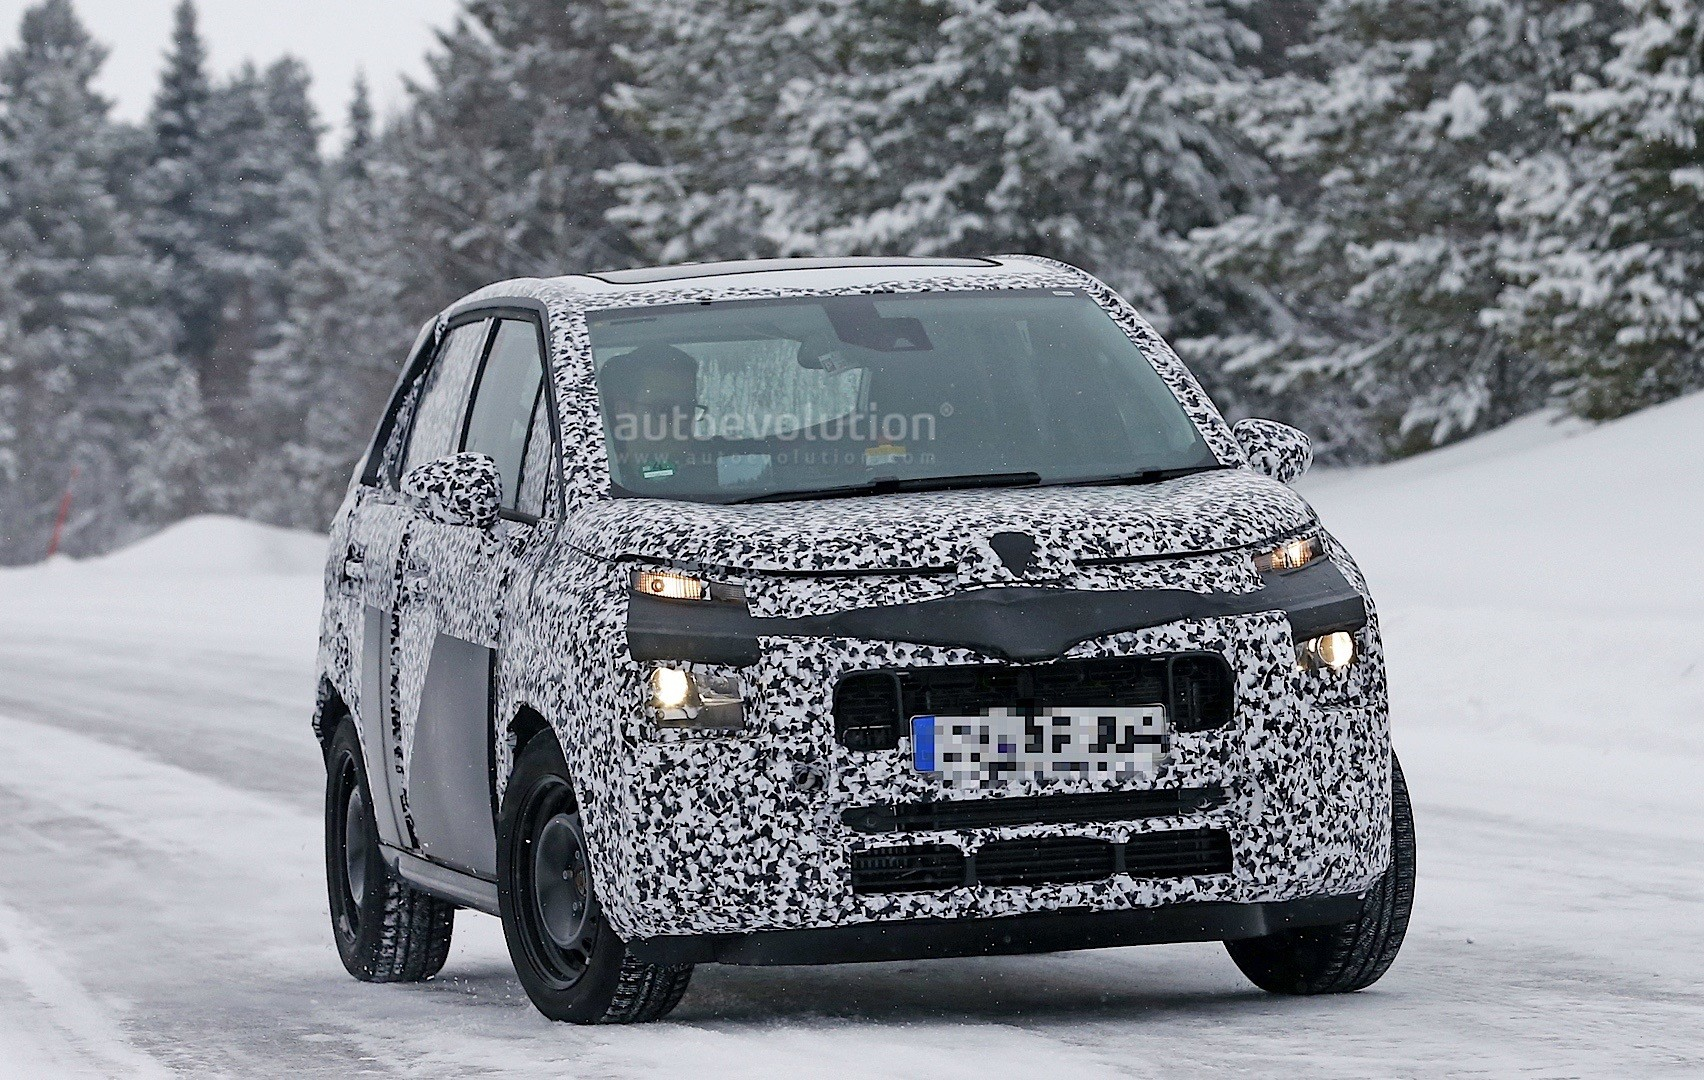 2017 citroen c3 picasso spied borrows styling cues from c4 picasso autoevolution. Black Bedroom Furniture Sets. Home Design Ideas